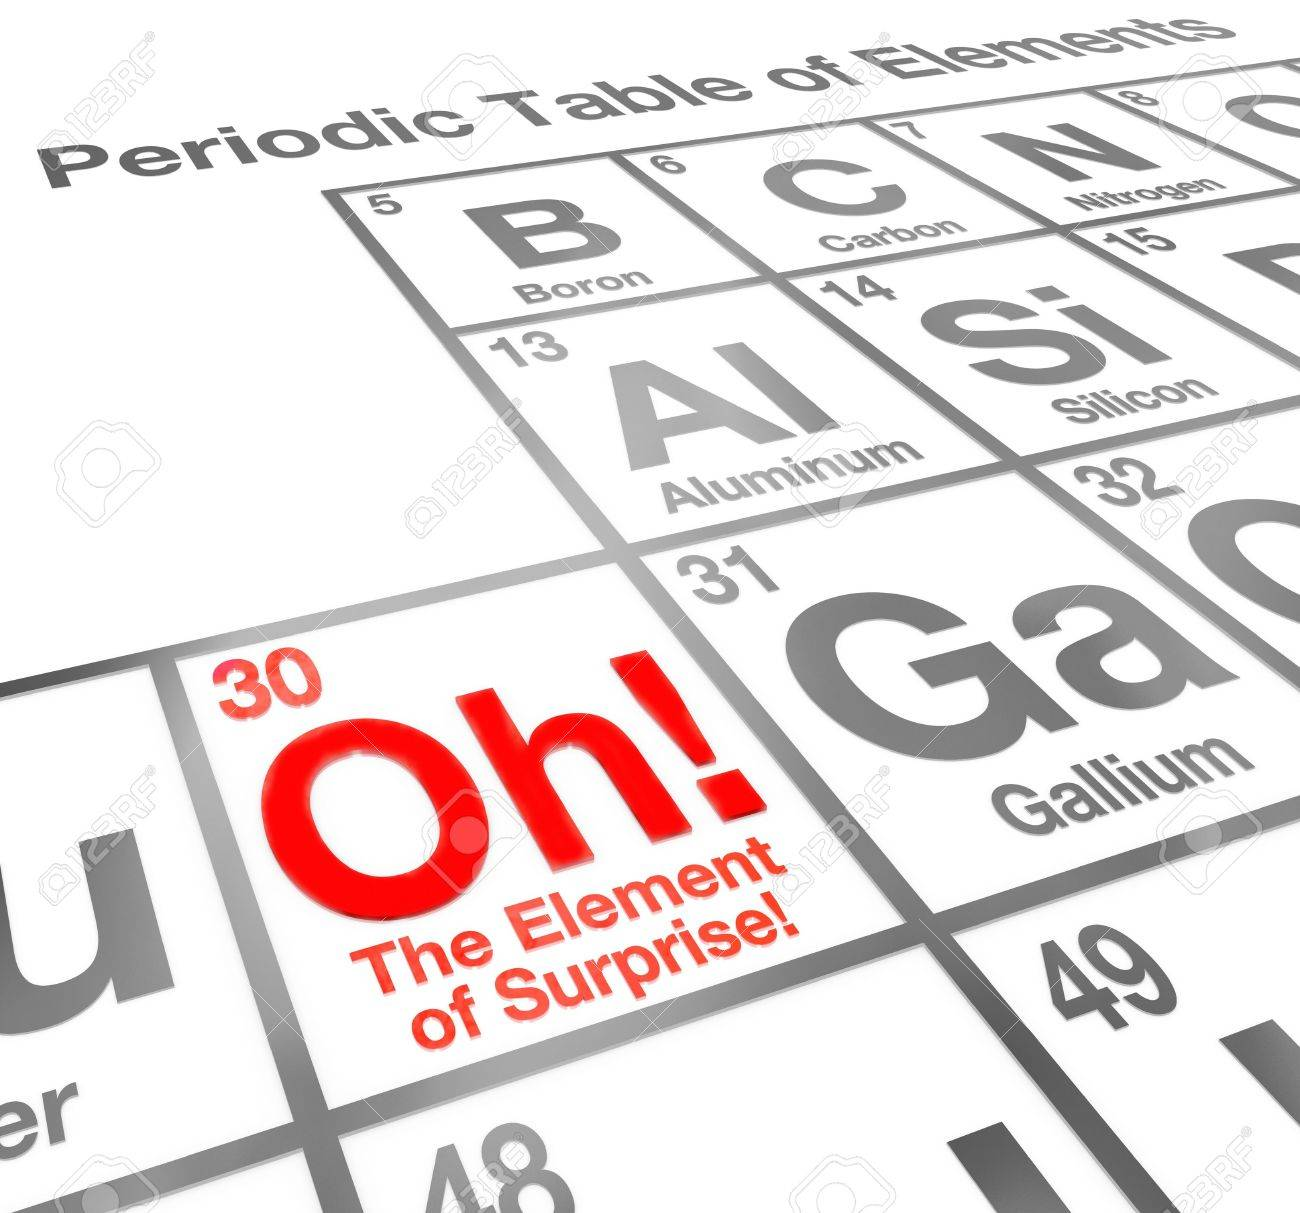 The words element of surprise on a periodic table of chemical the words element of surprise on a periodic table of chemical elements to illustrate something that urtaz Images